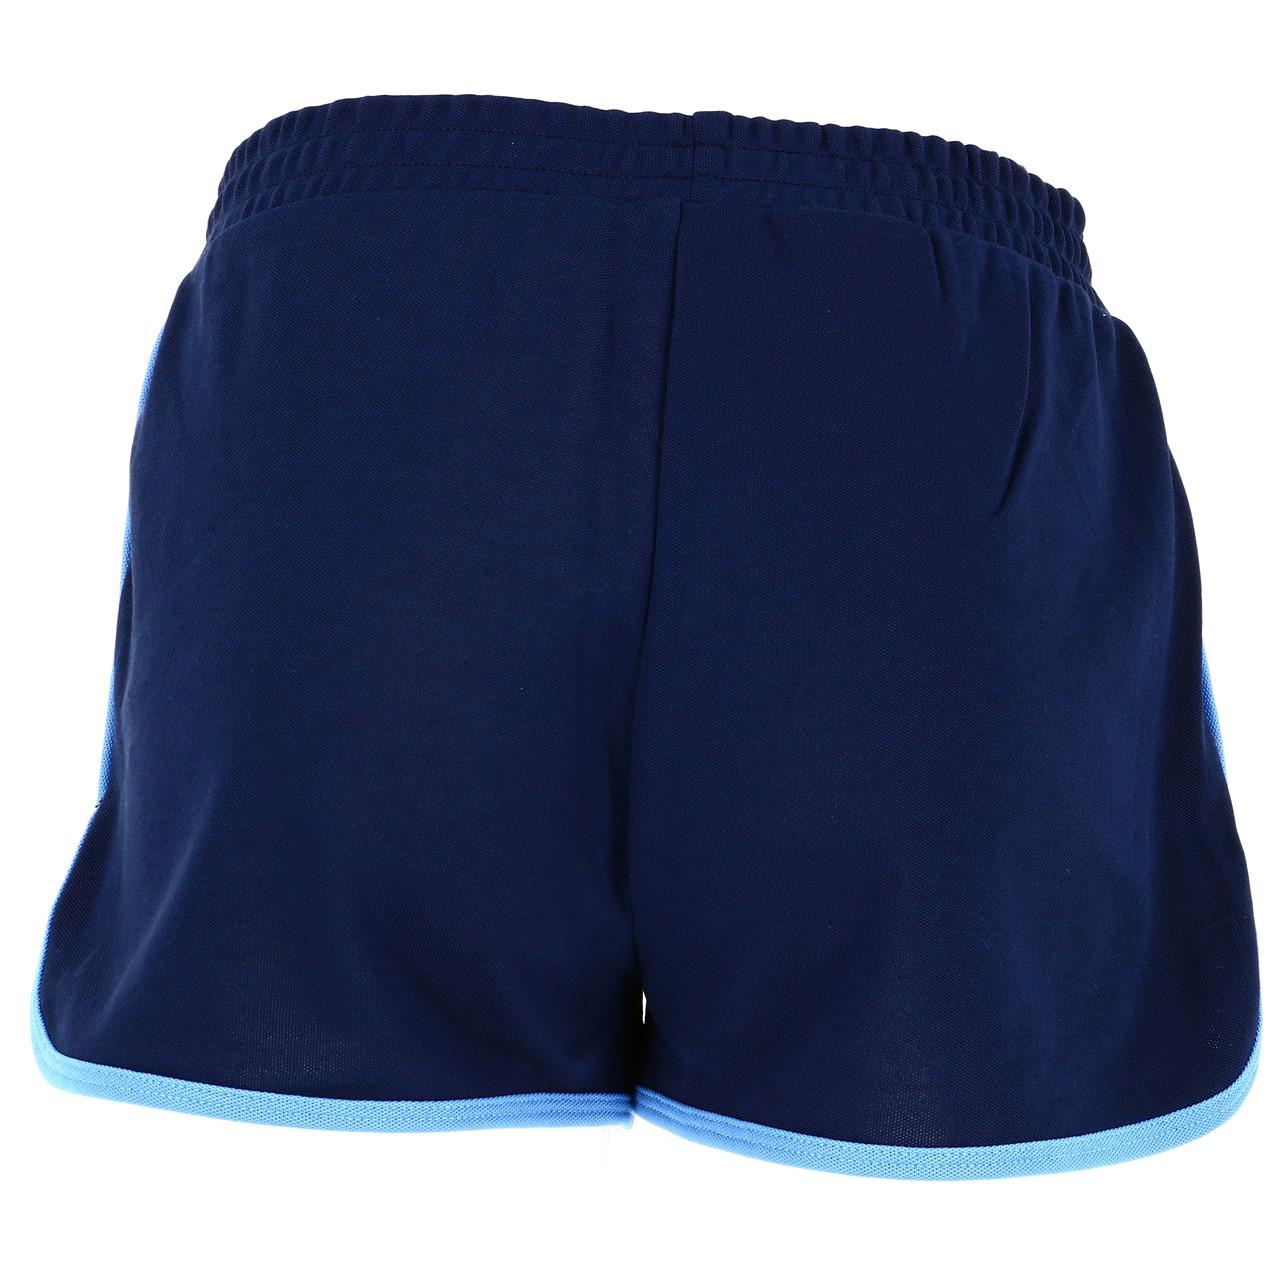 Bermuda-Shorts-Fila-Paige-Shorts-Vintage-W-Blue-45218-New thumbnail 5